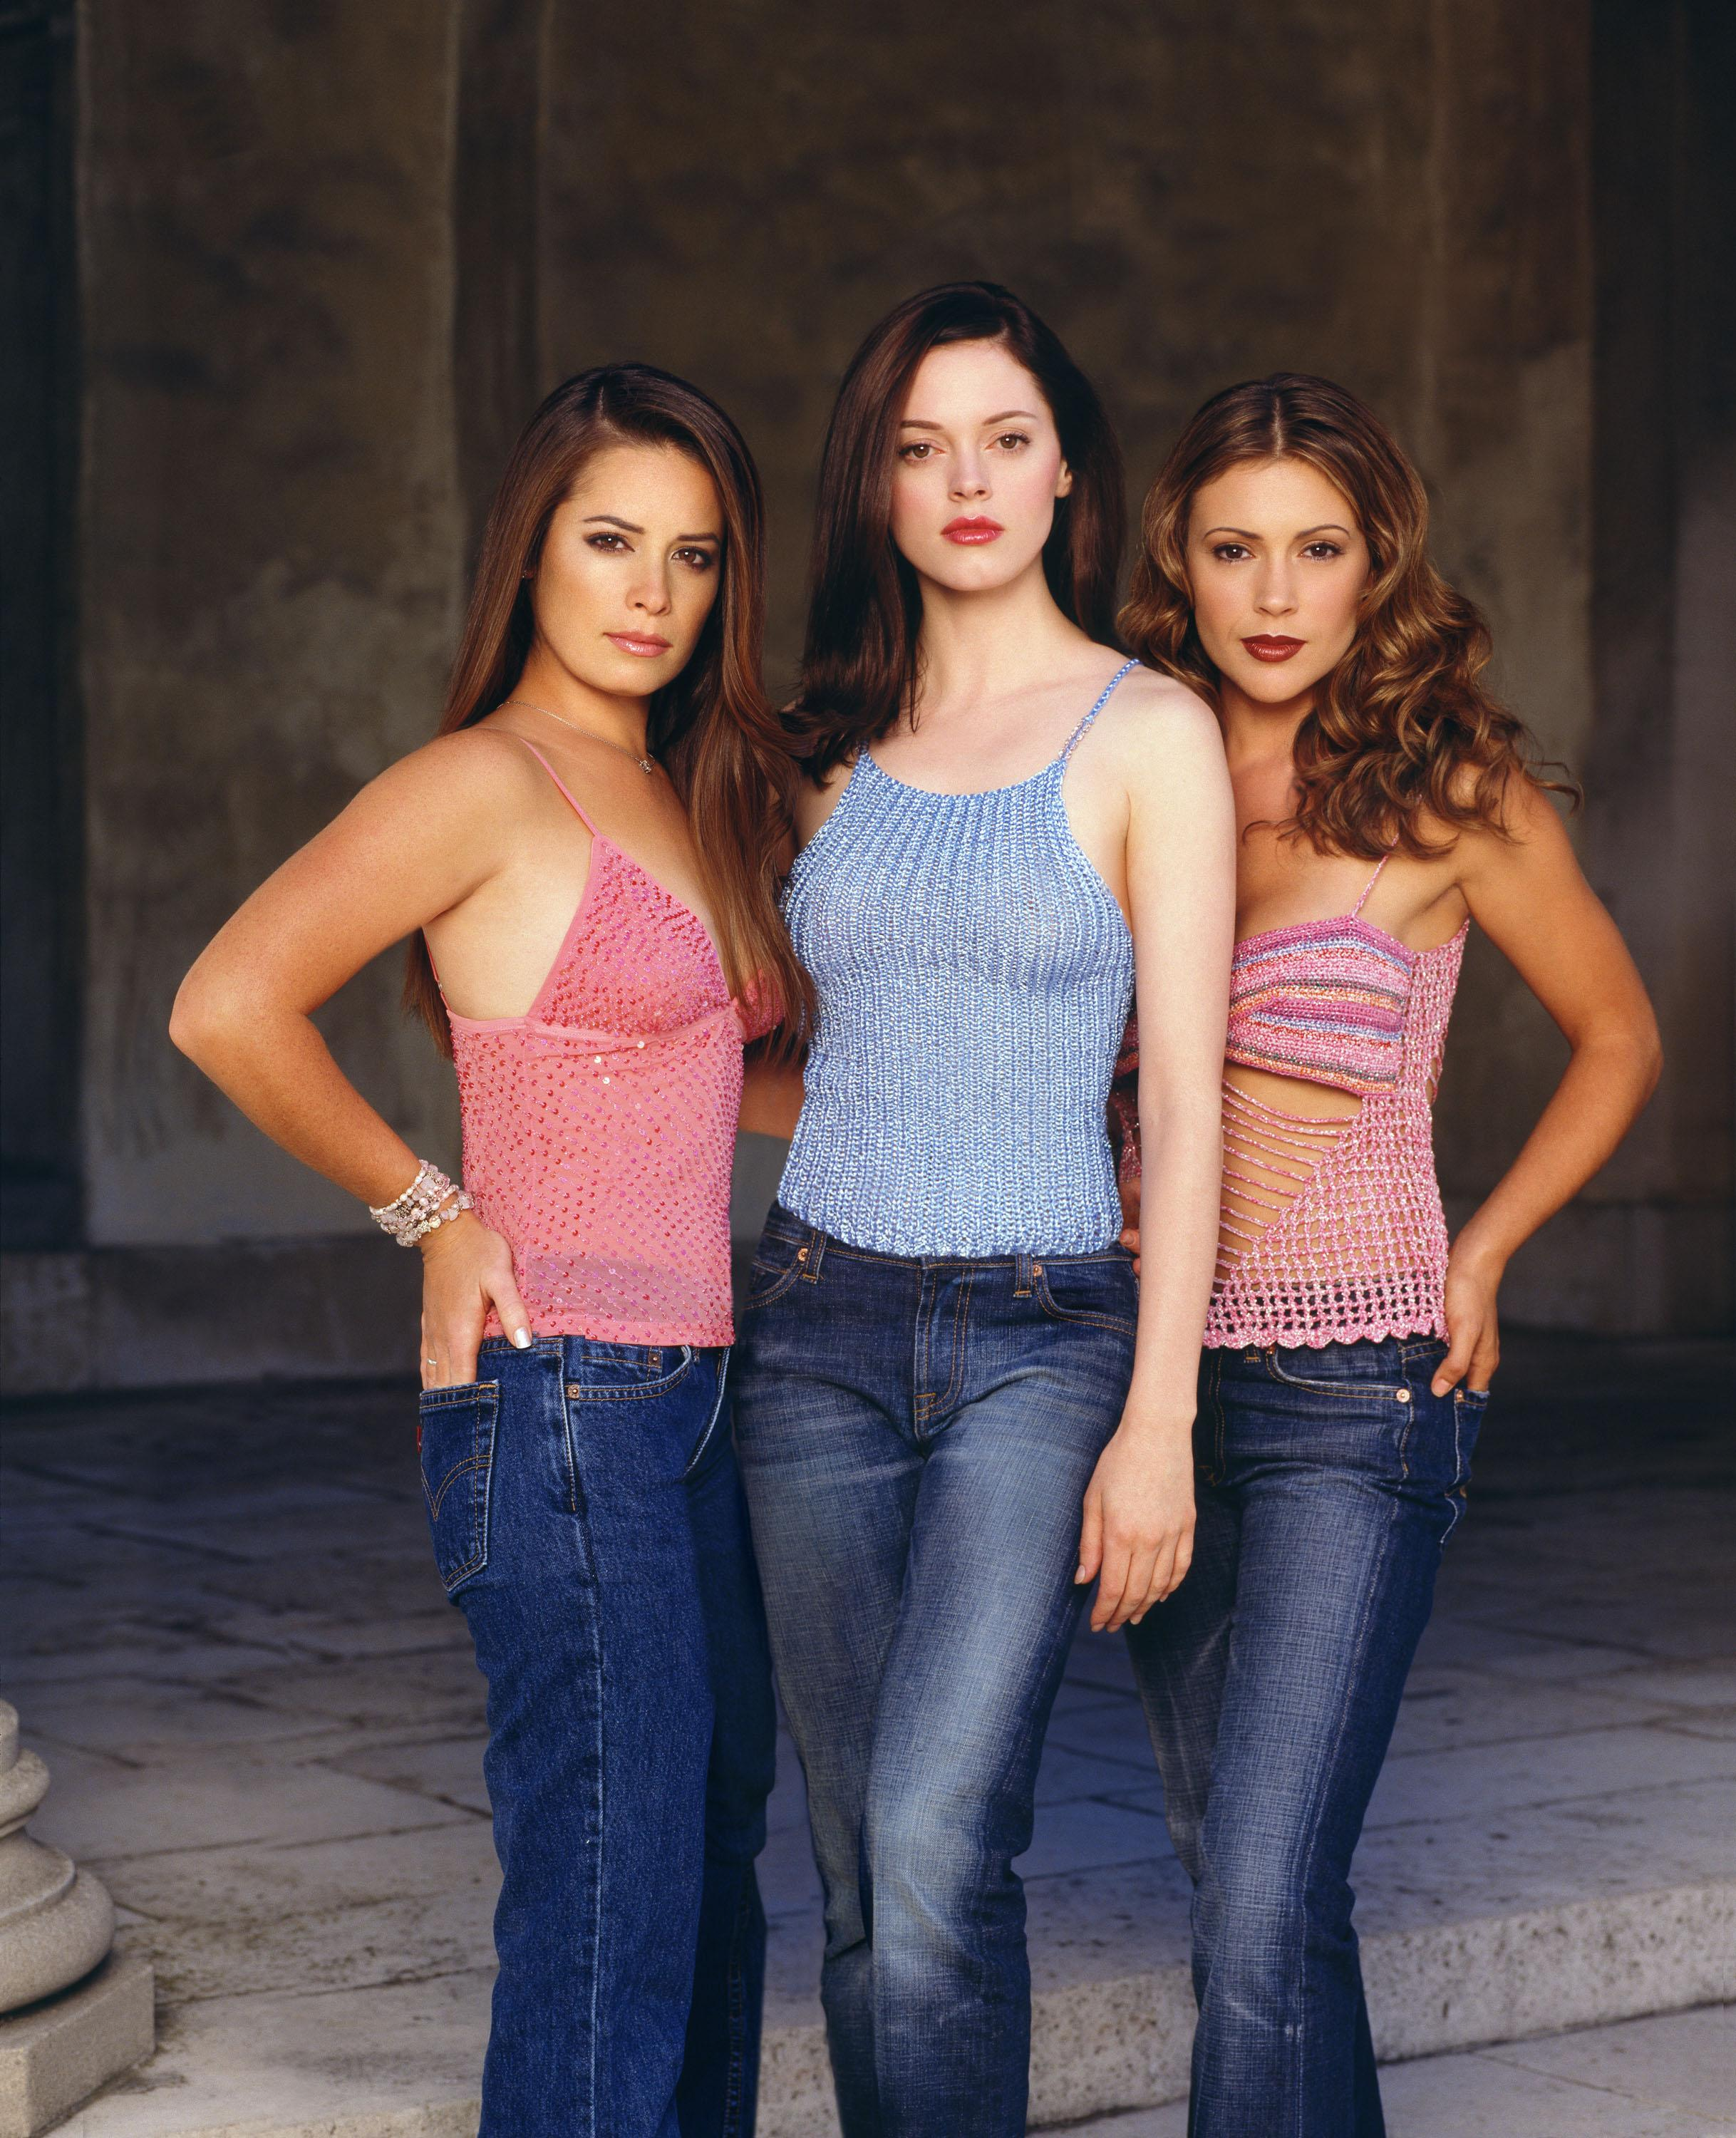 Charmed-Milano-Combs-Doherty-Mcgowan-Cuoco-Halliwell-Hot -5361